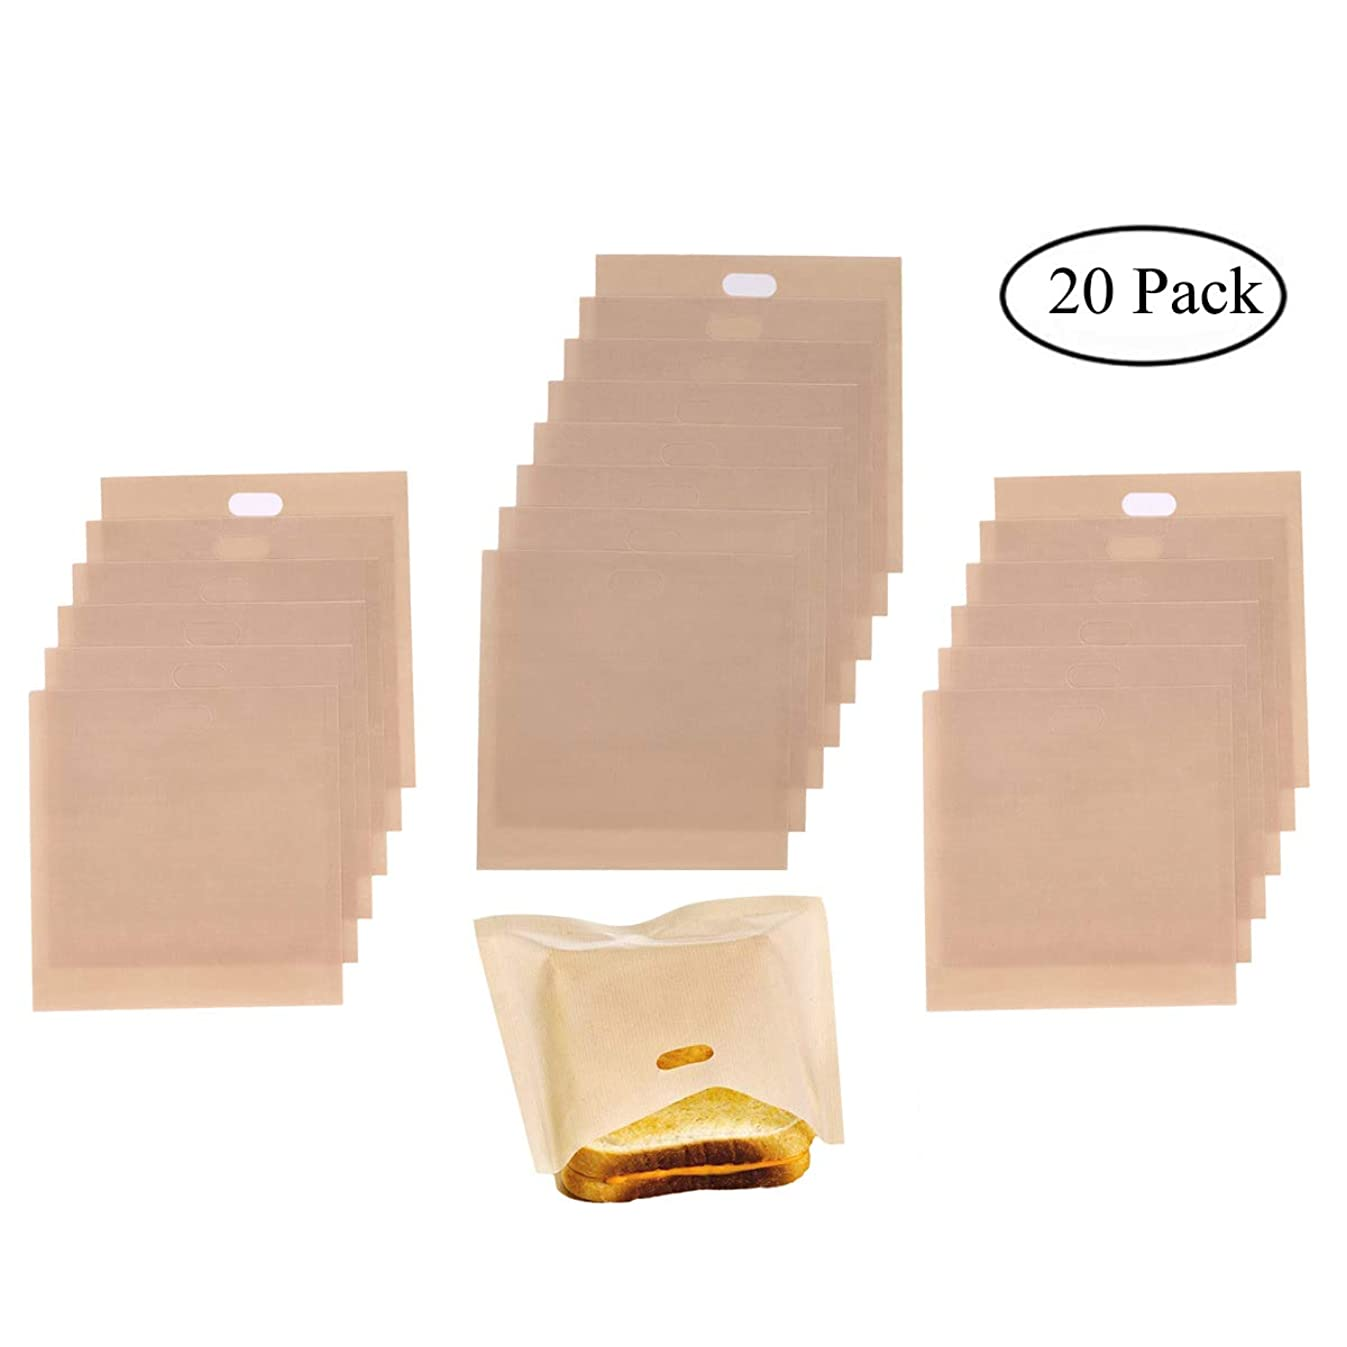 20 Pack Non Stick Toaster Bags, Homezal 3 Different Sizes Toaster Grilled Cheese Bags, Gluten Free, FDA Approved, Perfect for Sandwiches, Pastries, Pizza Slices, Chicken Nuggets and More